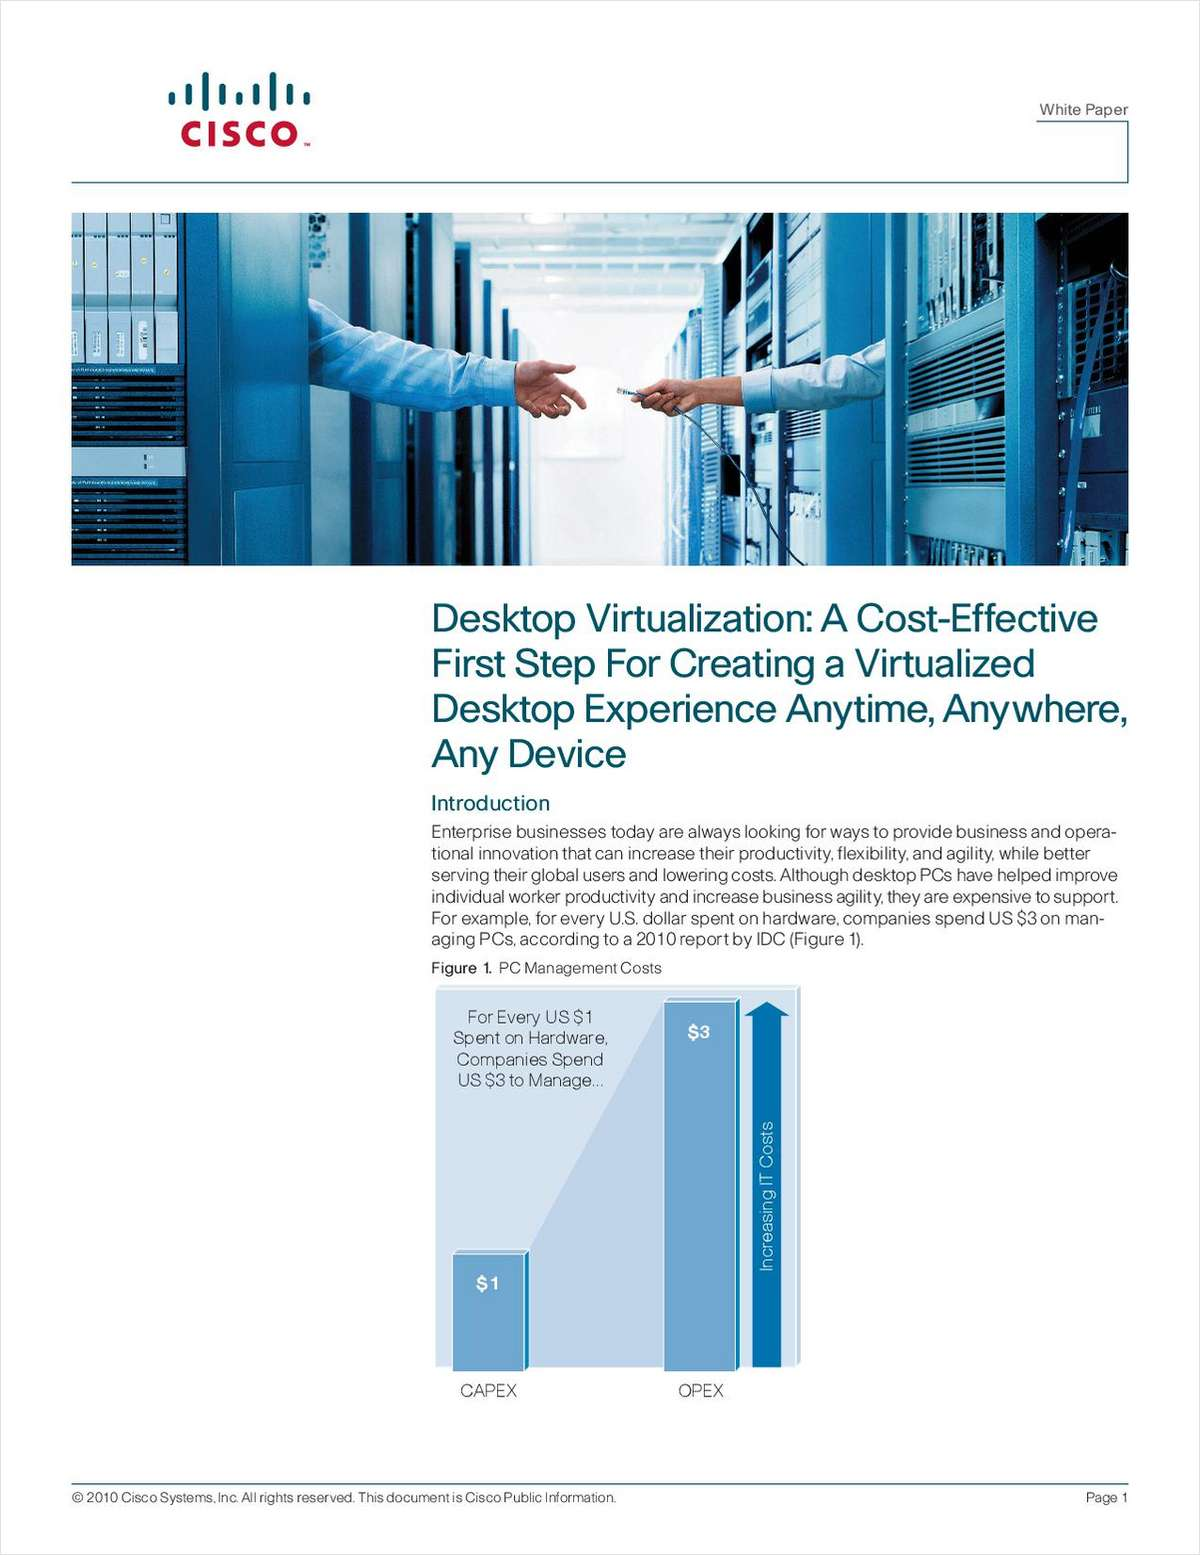 Desktop Virtualization: A Cost-Effective First Step For Creating a Virtualized Desktop Experience Anytime, Anywhere, Any Device